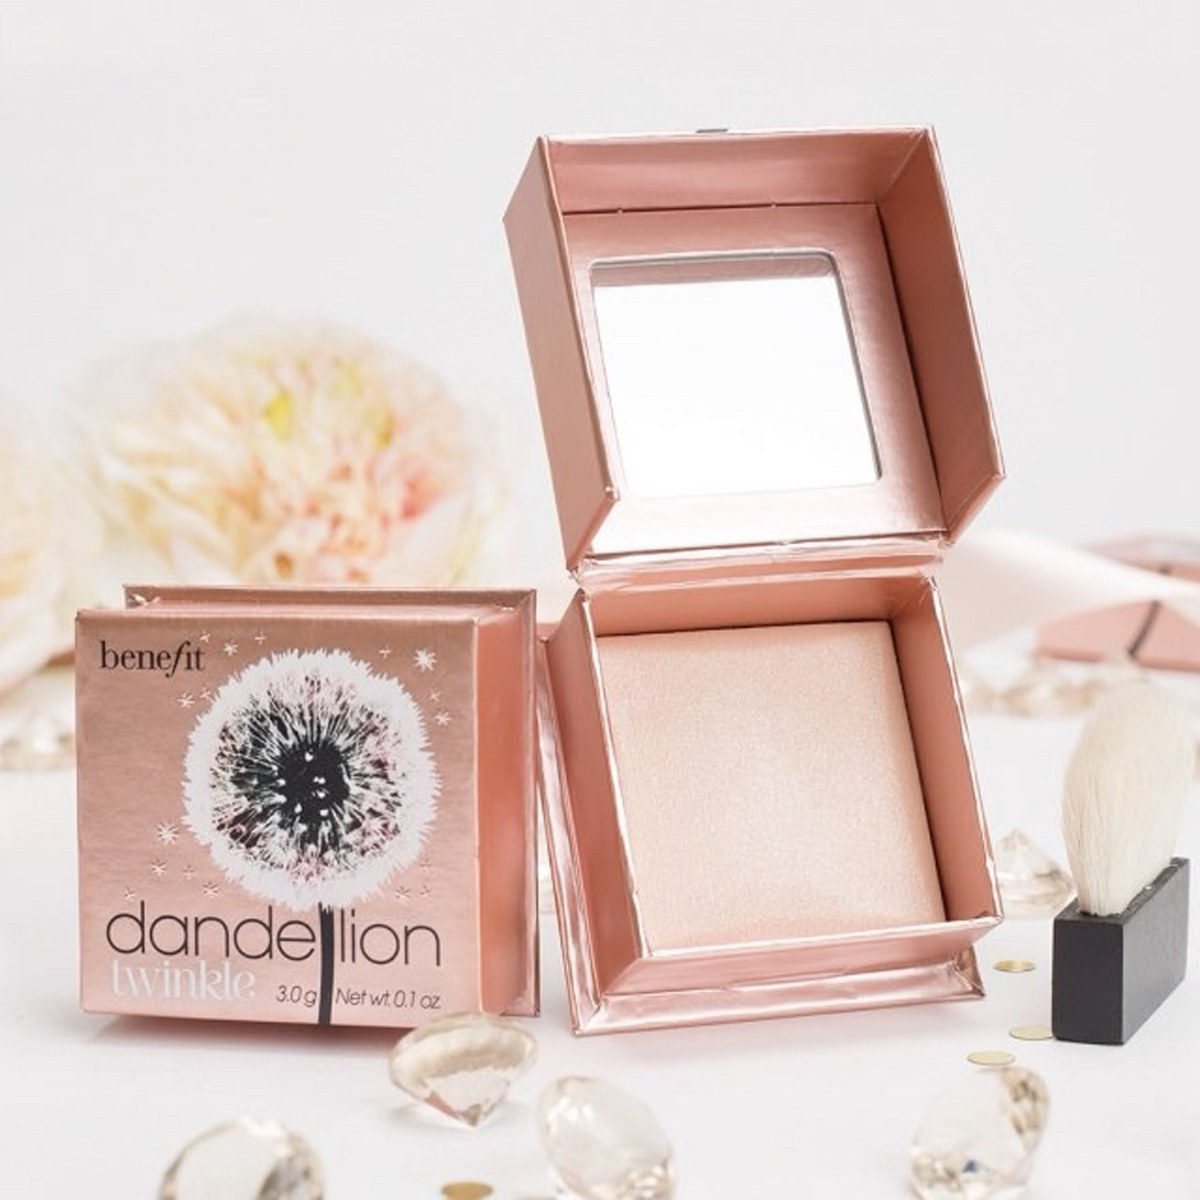 Dandelion Twinkle Highlighter by Benefit  (Source:  allure.com )